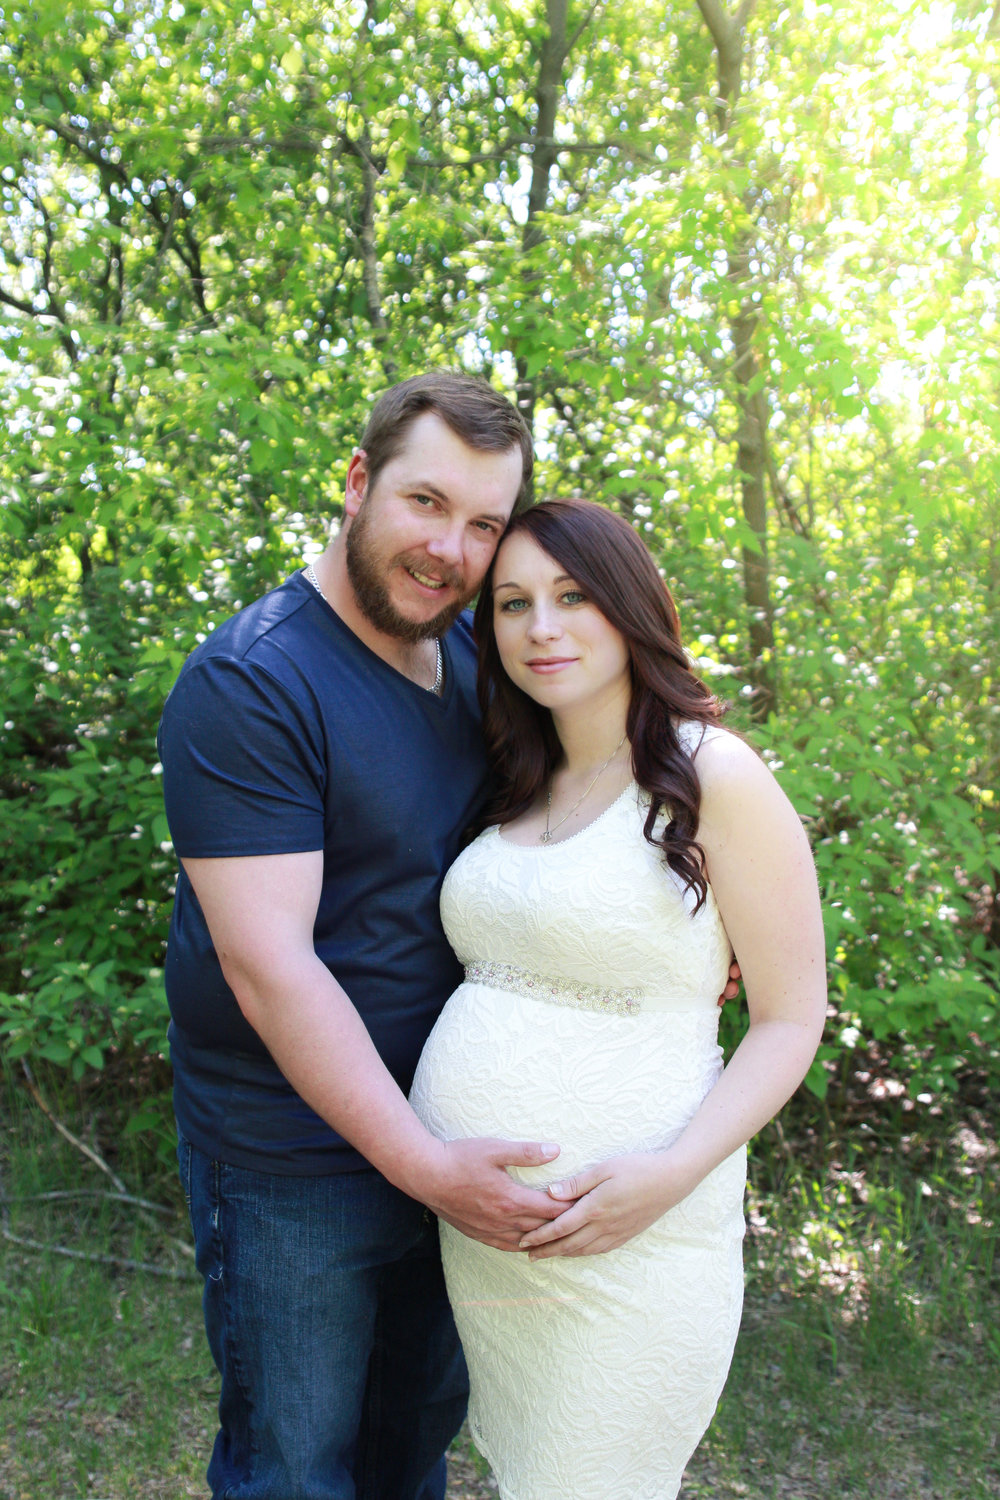 M&P {Expecting!}_WEB-33.jpg